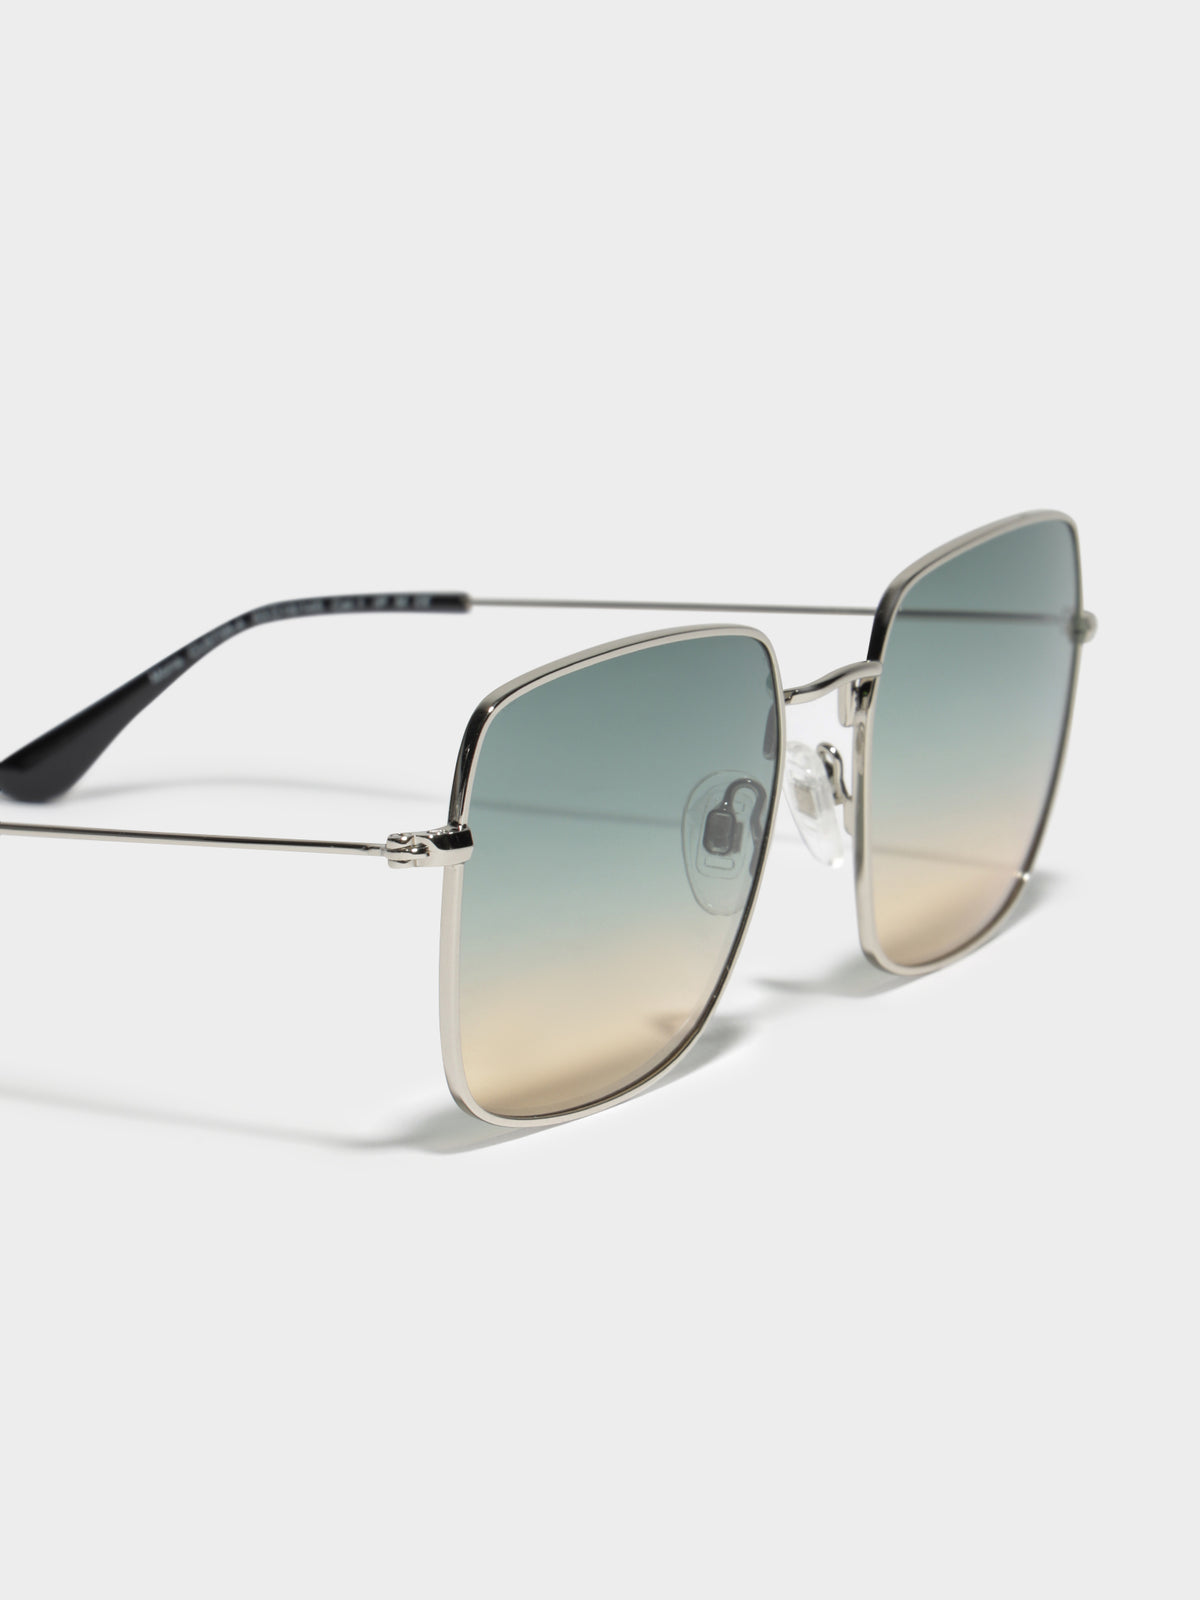 Mona CL673804 Sunglasses in Sliver Green & Yellow